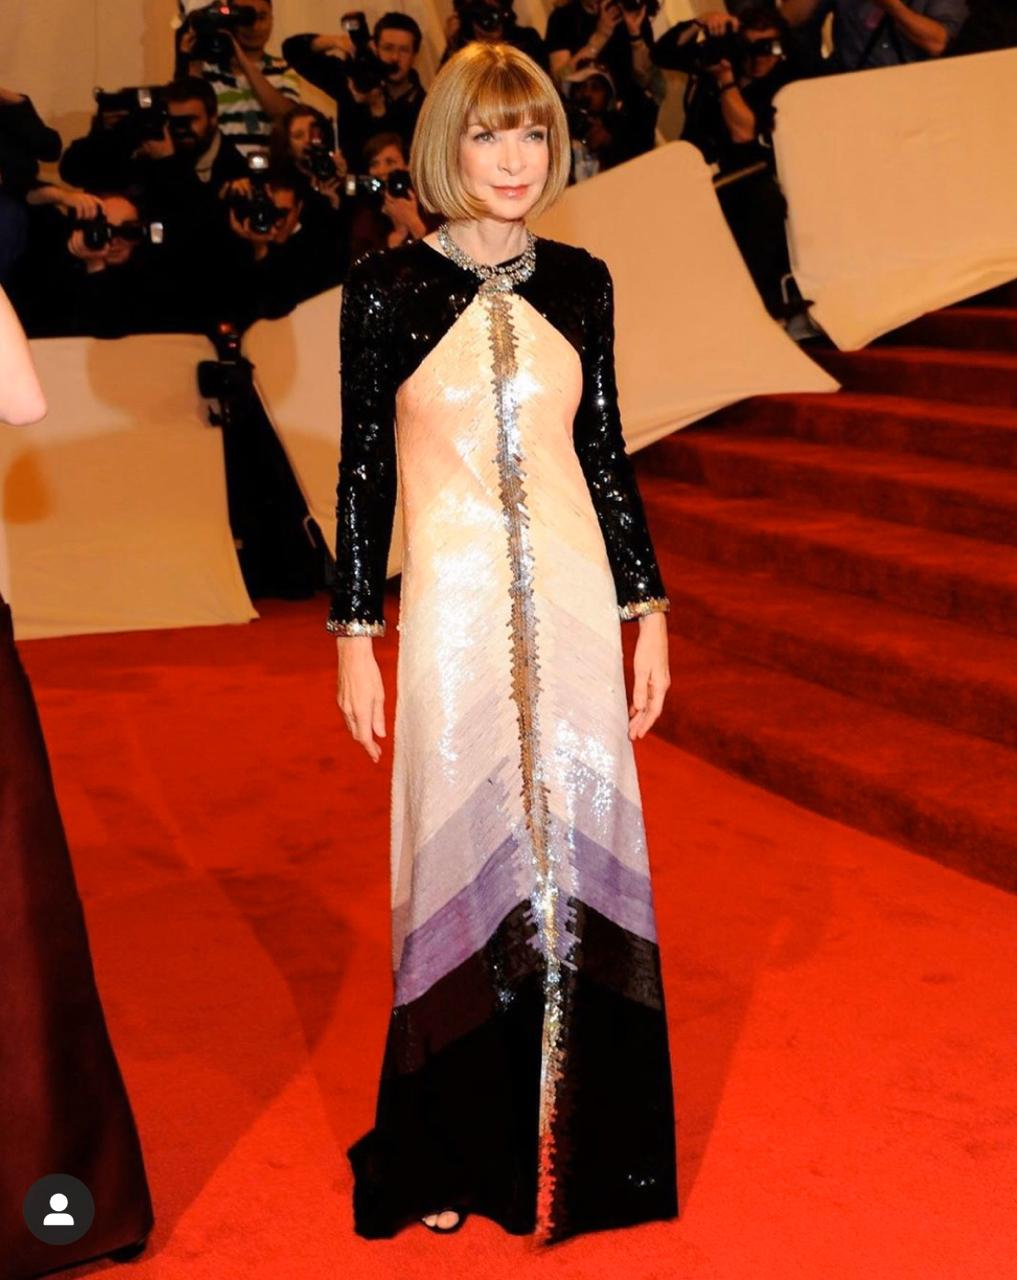 Anna Wintour no MetGala 2011, um alta-costura Chanel